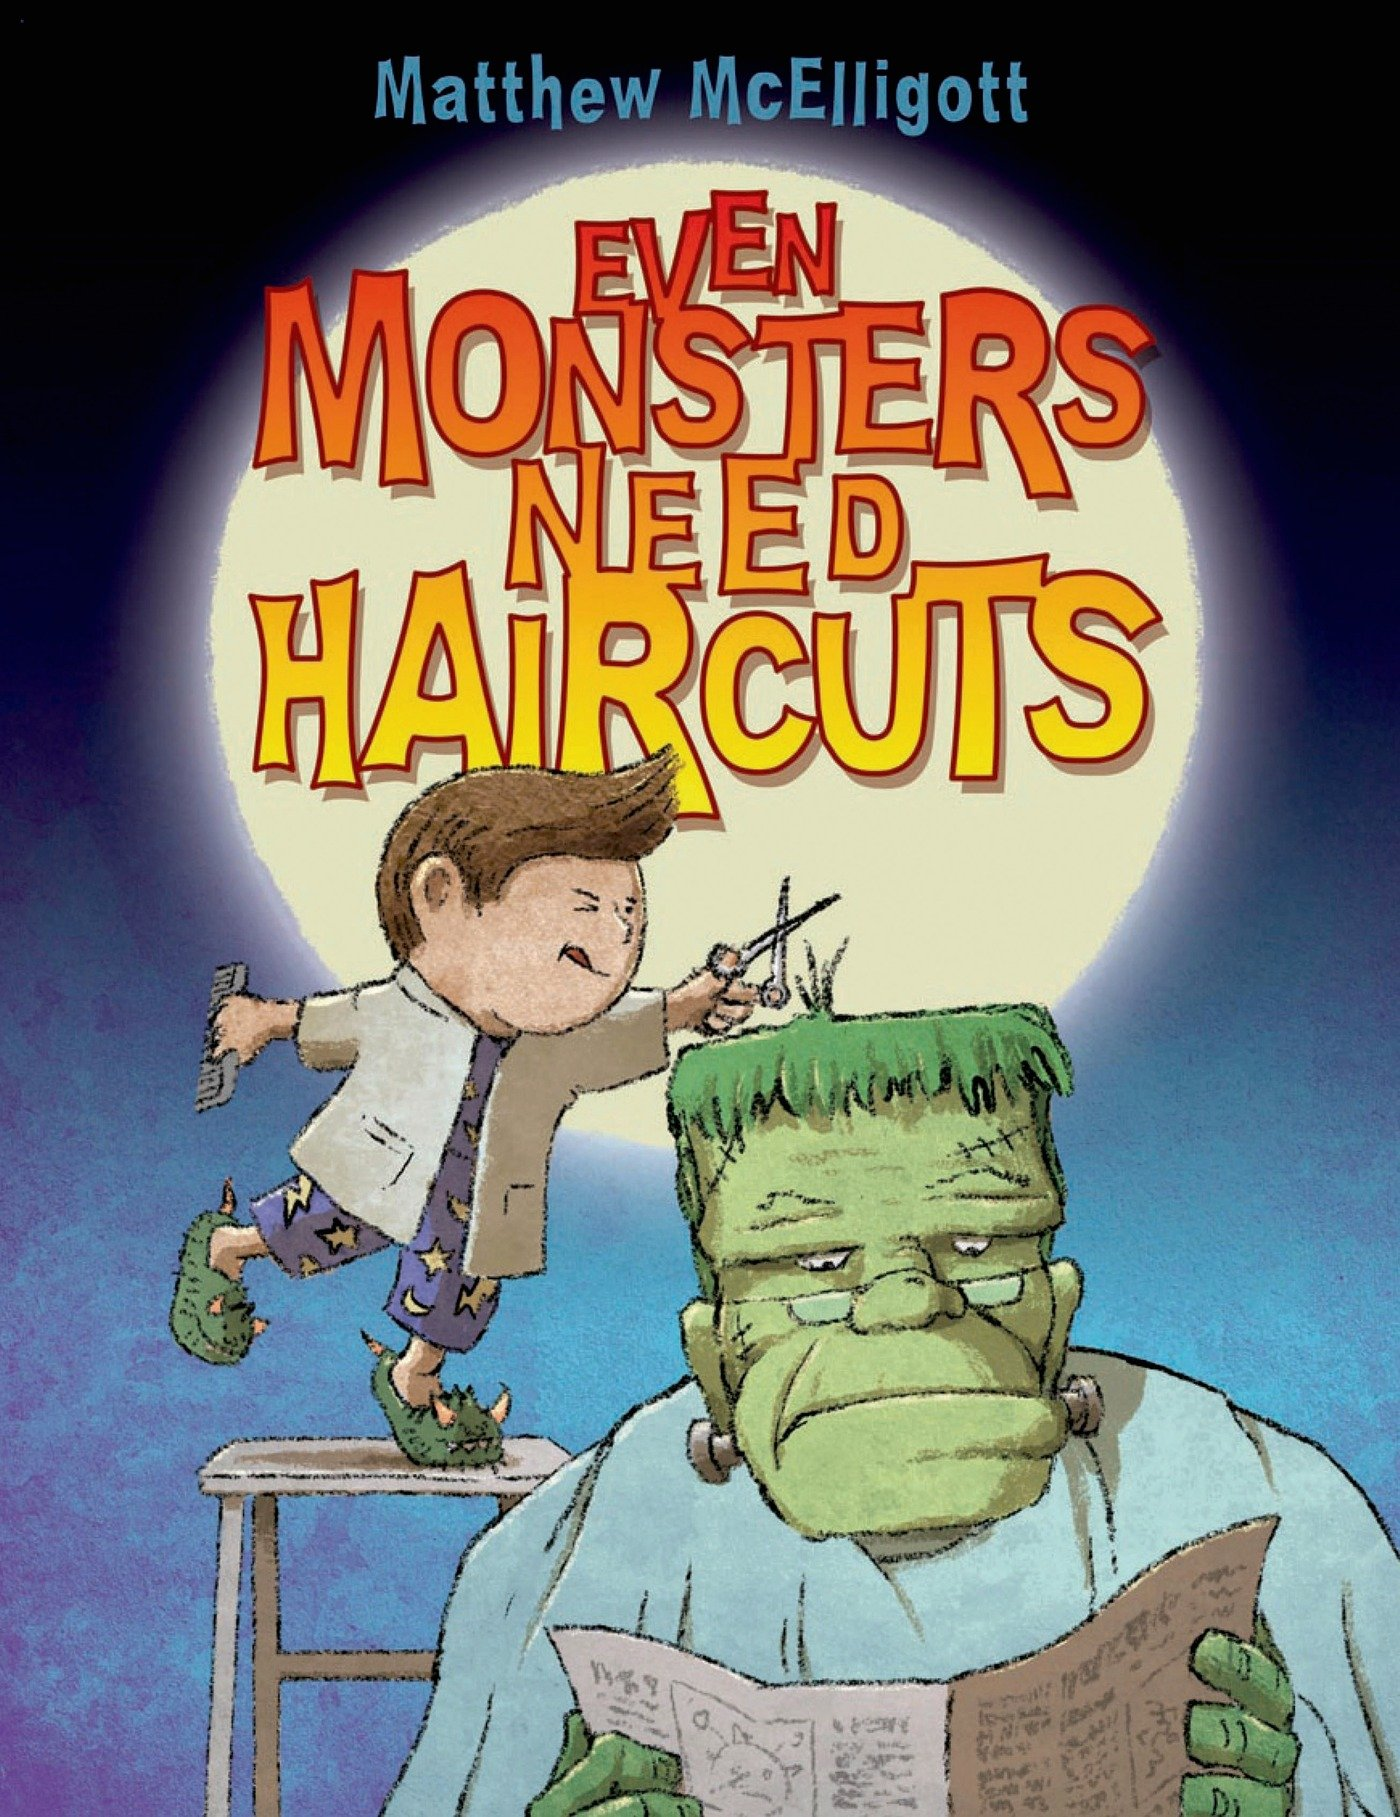 Even monsters need haircuts matthew mcelligott 9780802738394 even monsters need haircuts matthew mcelligott 9780802738394 amazon books fandeluxe Image collections